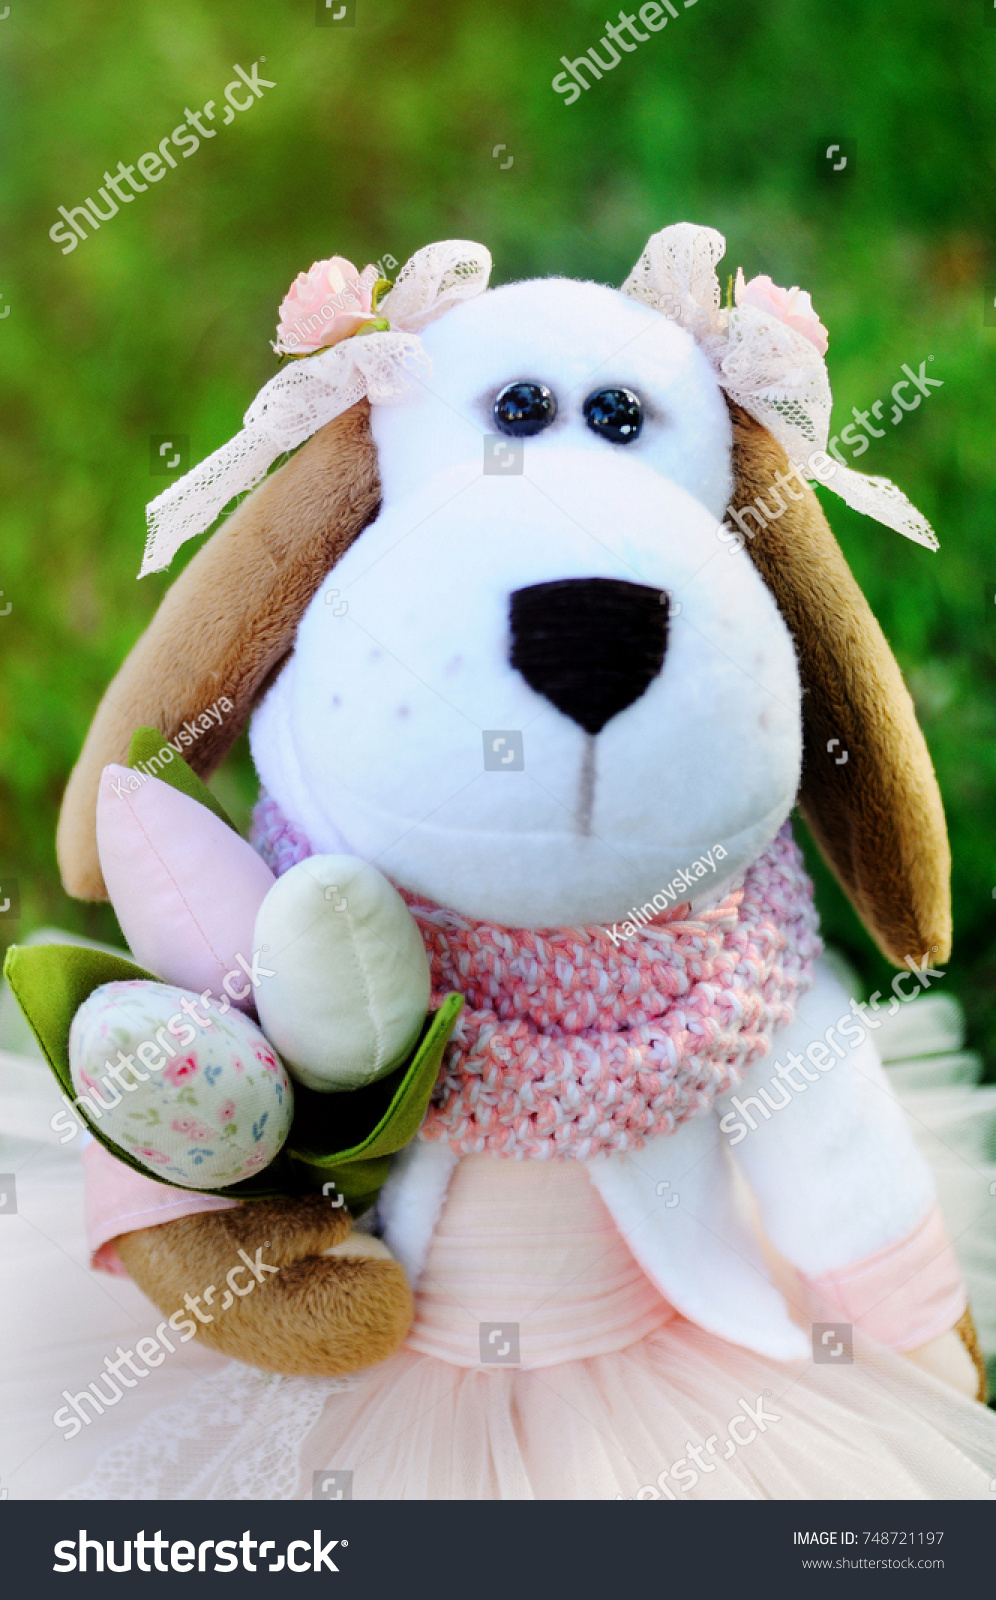 Dog Symbol 2018 Meets Spring Bouquet Stock Photo Safe To Use